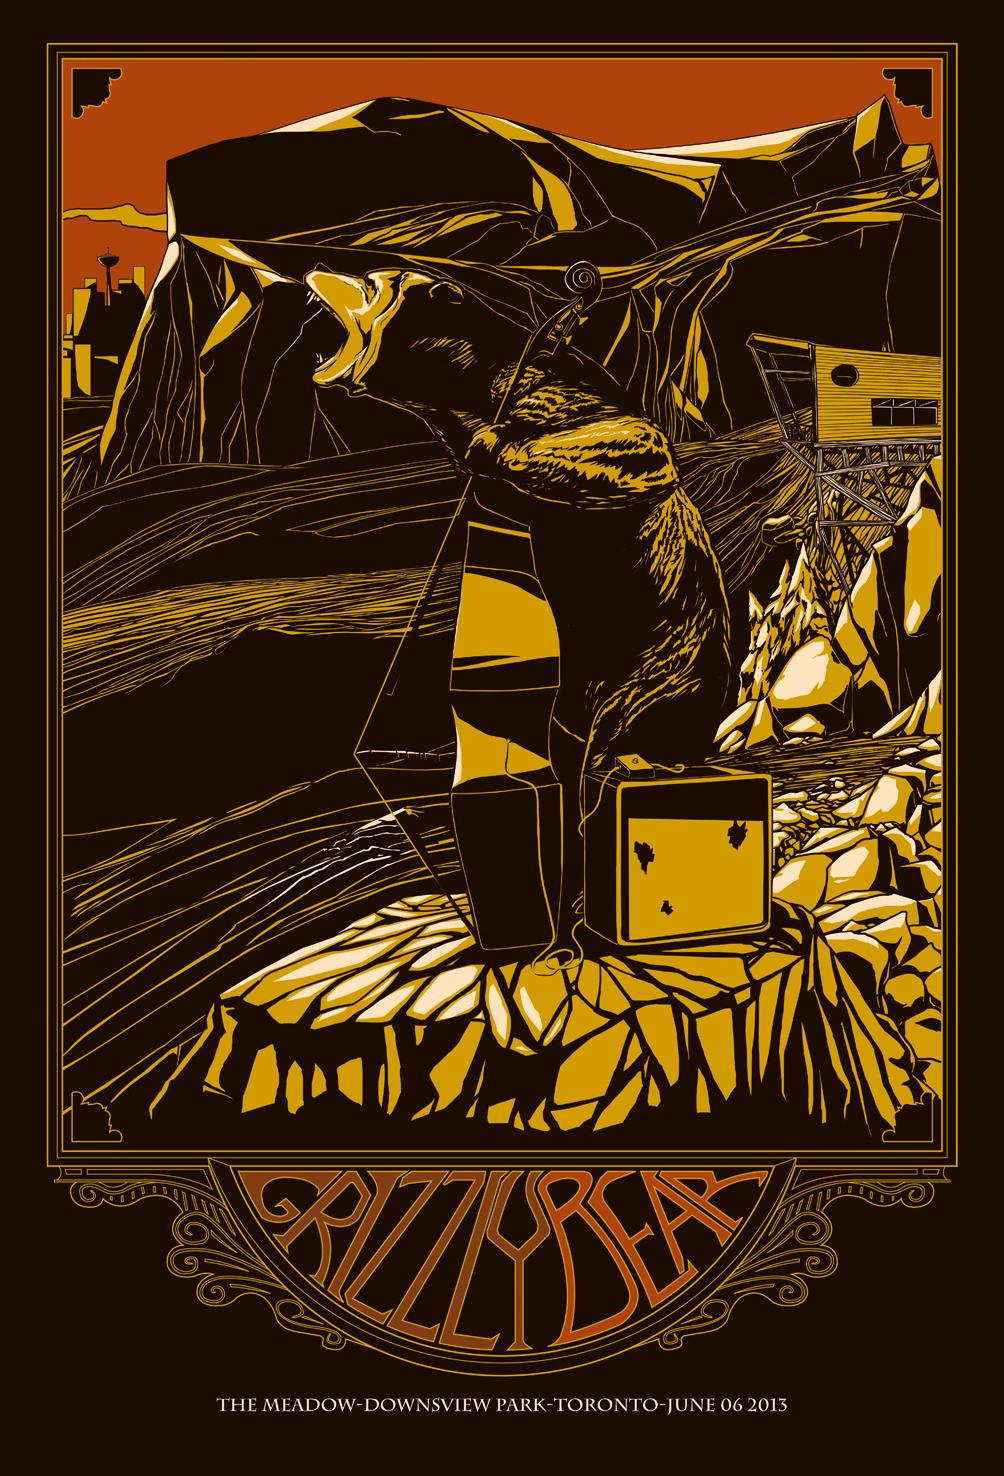 GRIZZLY BEAR poster - image 1 - student project